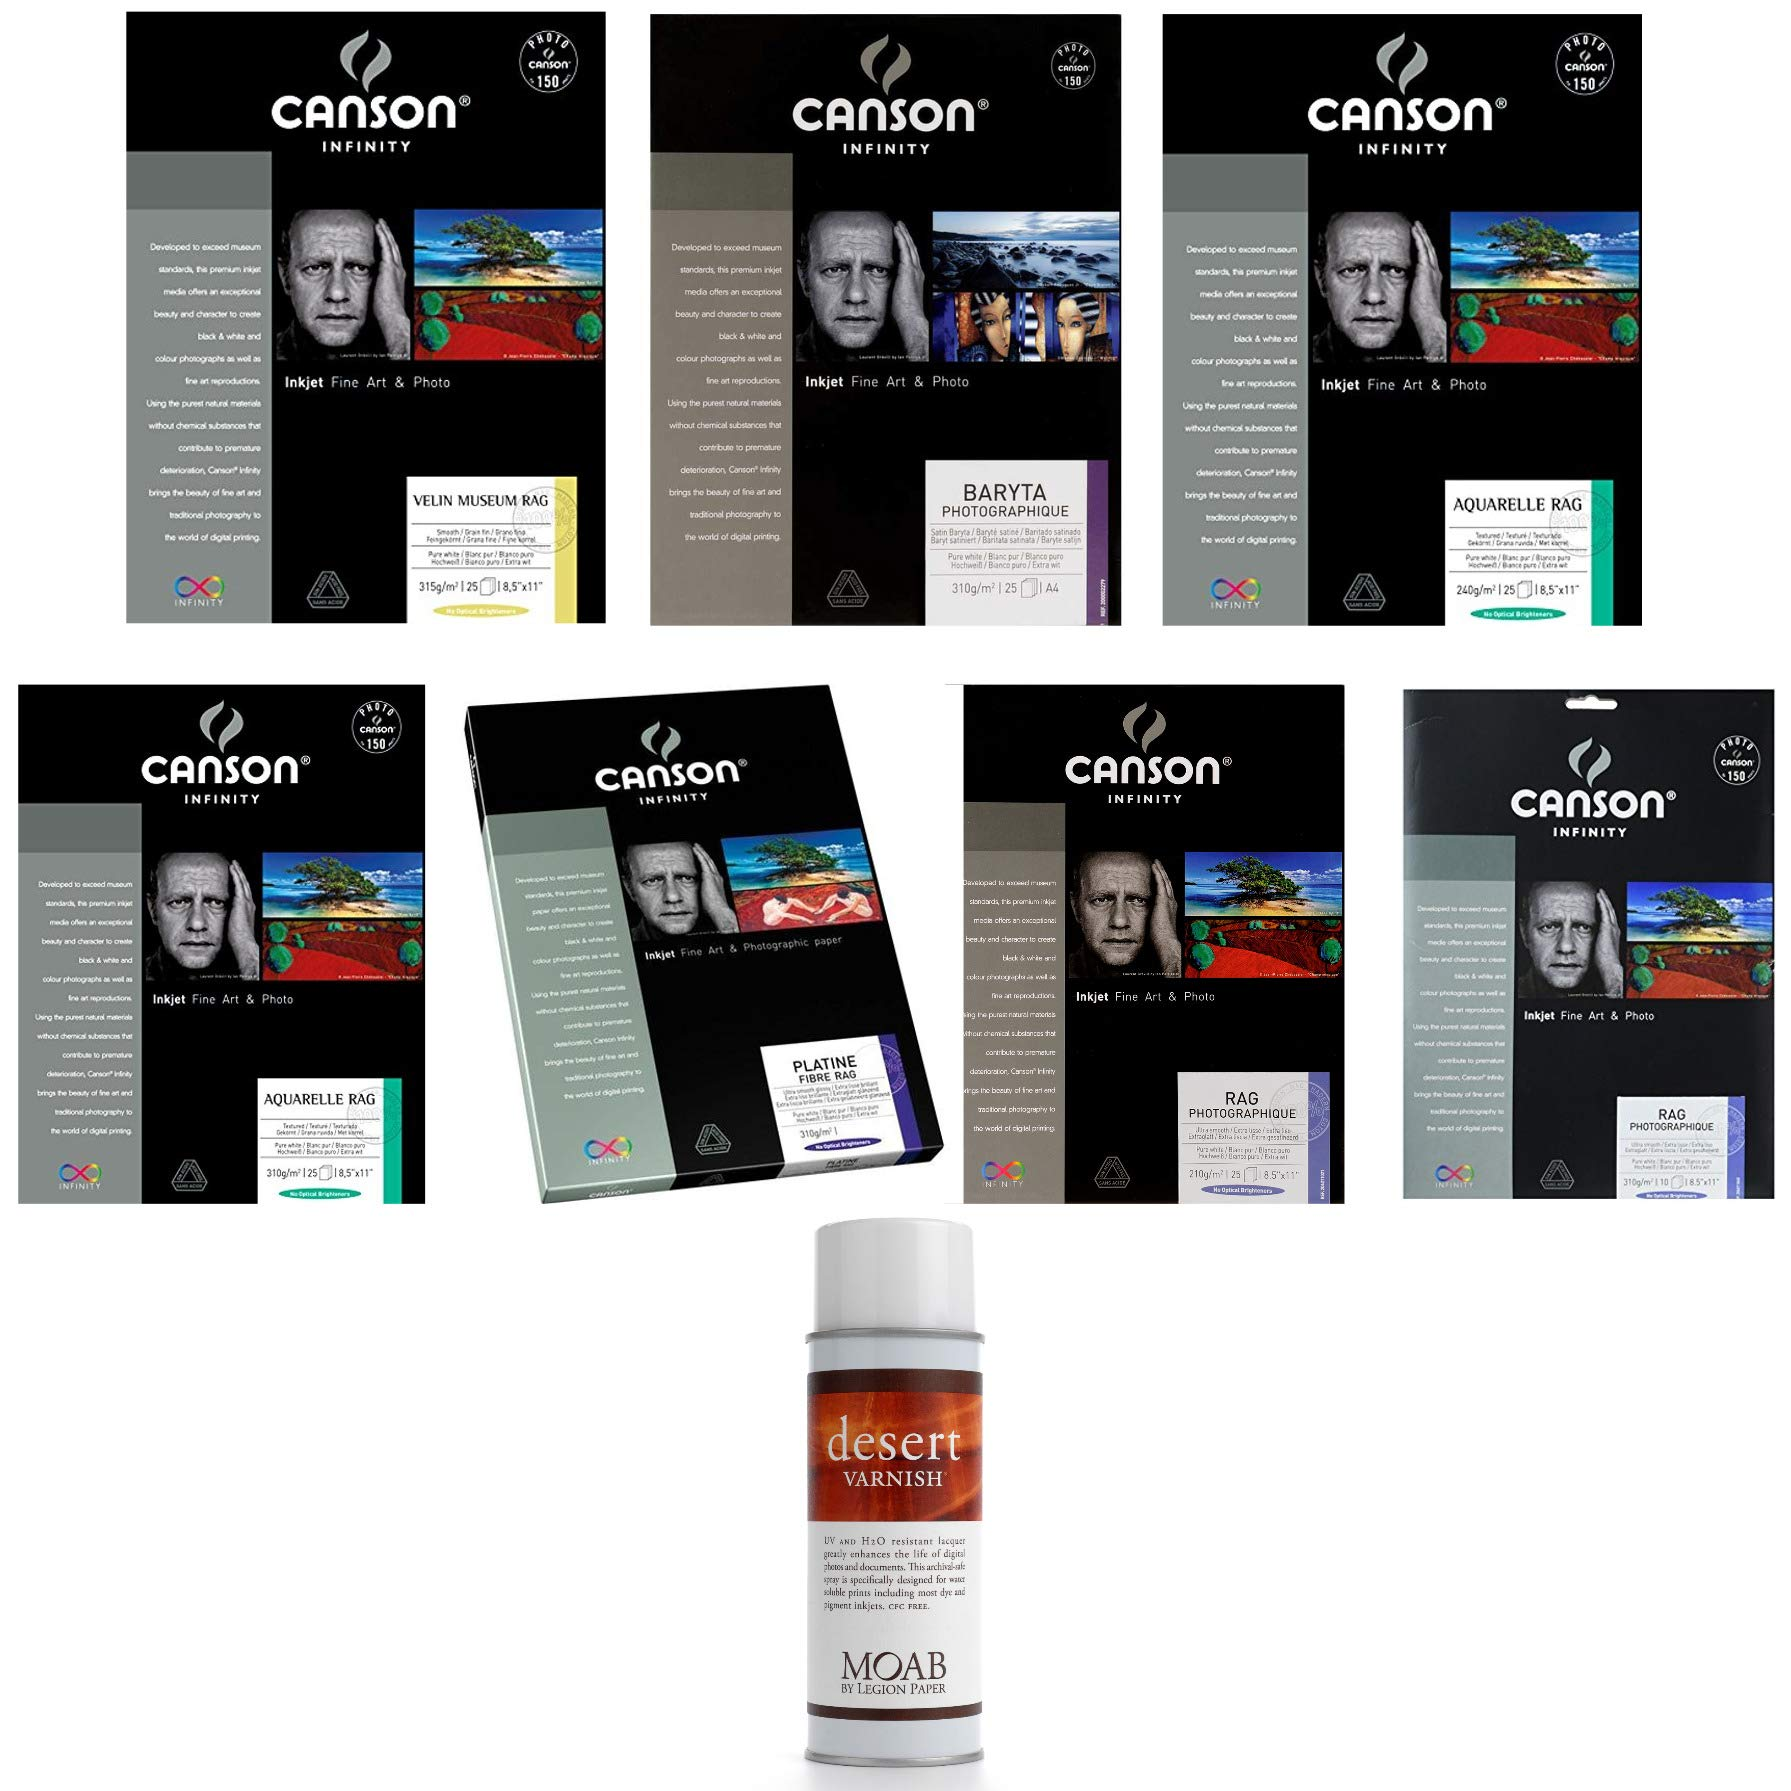 Canson Infinity 8.5 x 11 Inch Paper Collection (7 Varieties) with Varnish Spray